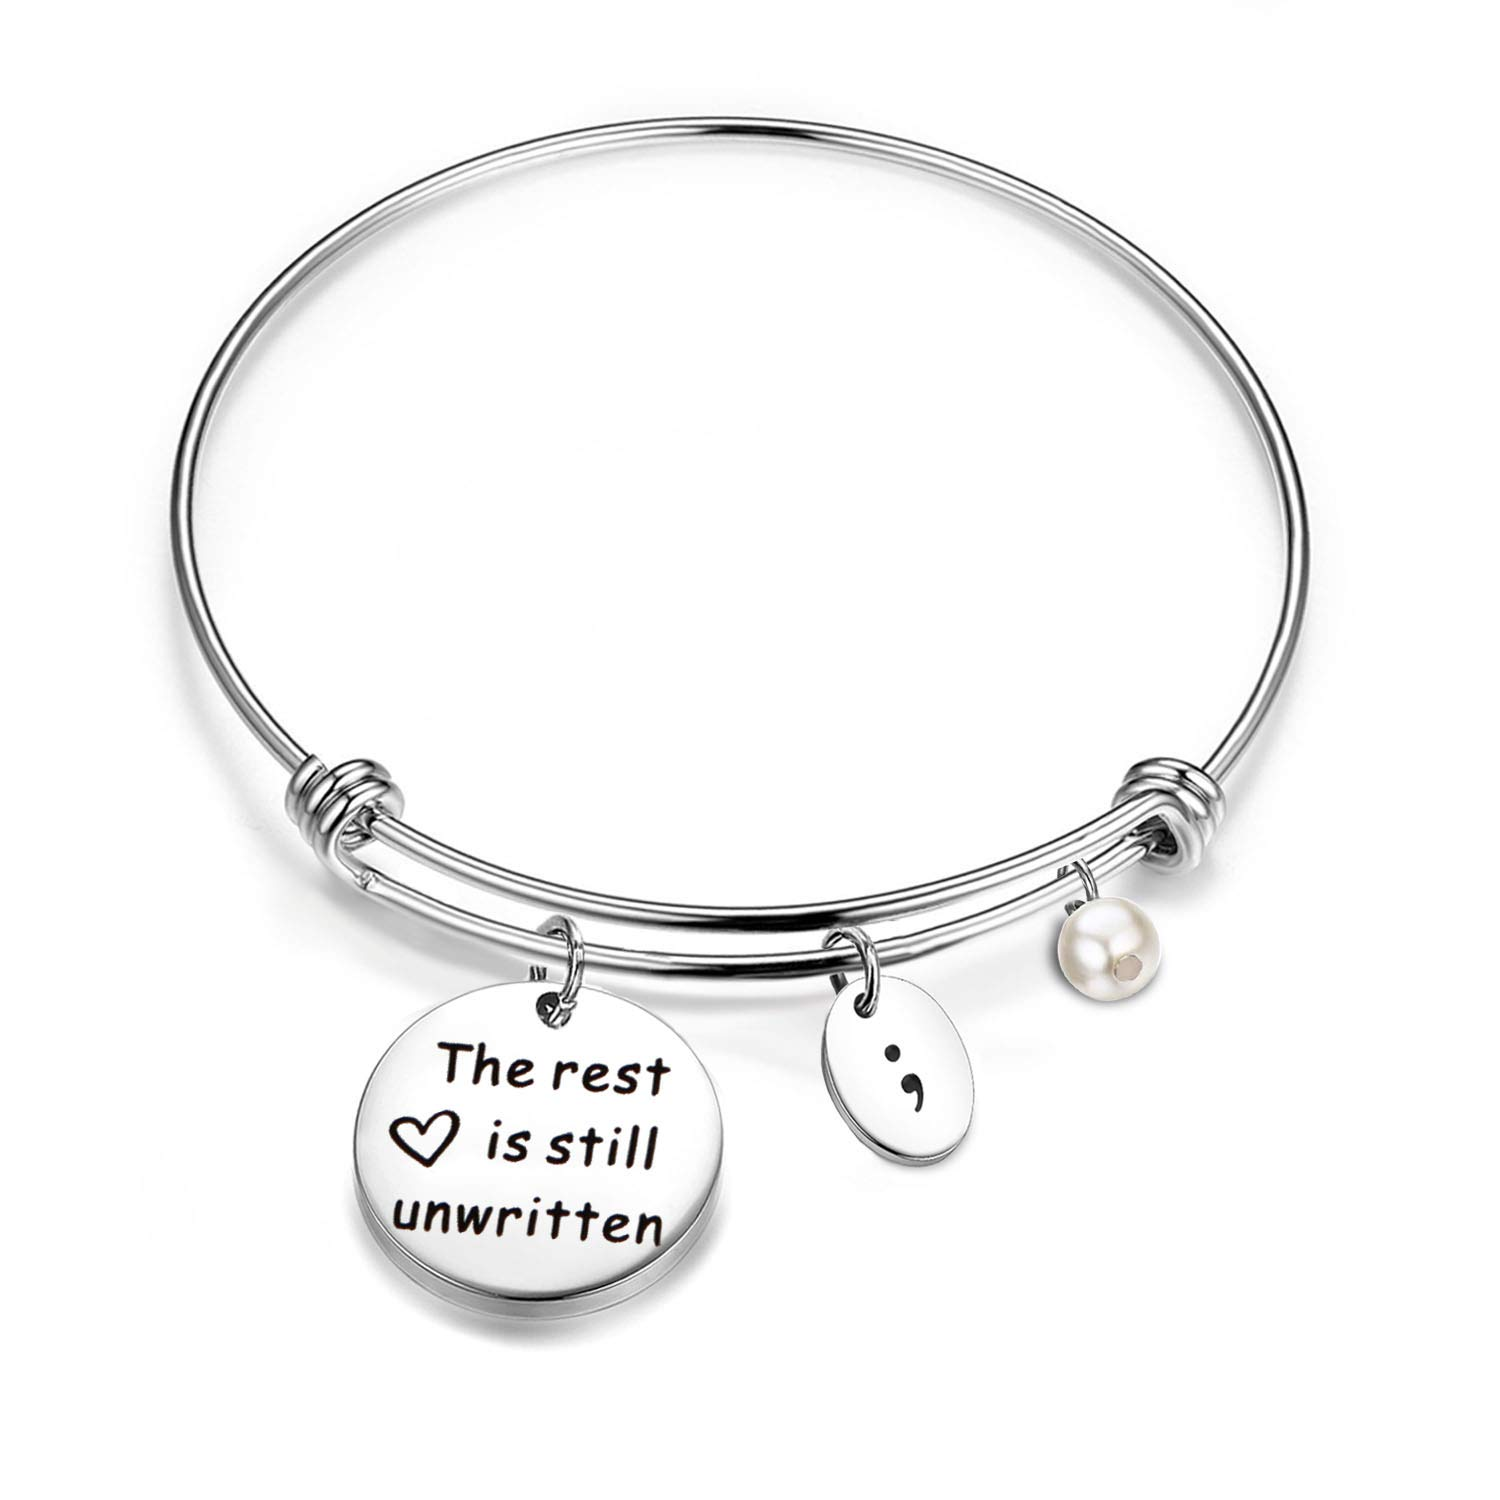 bobauna The Rest is Still Unwritten Semicolon Bracelet Mental Health Suicide Awareness Inspirational Jewelry B07GKDXSFY_US